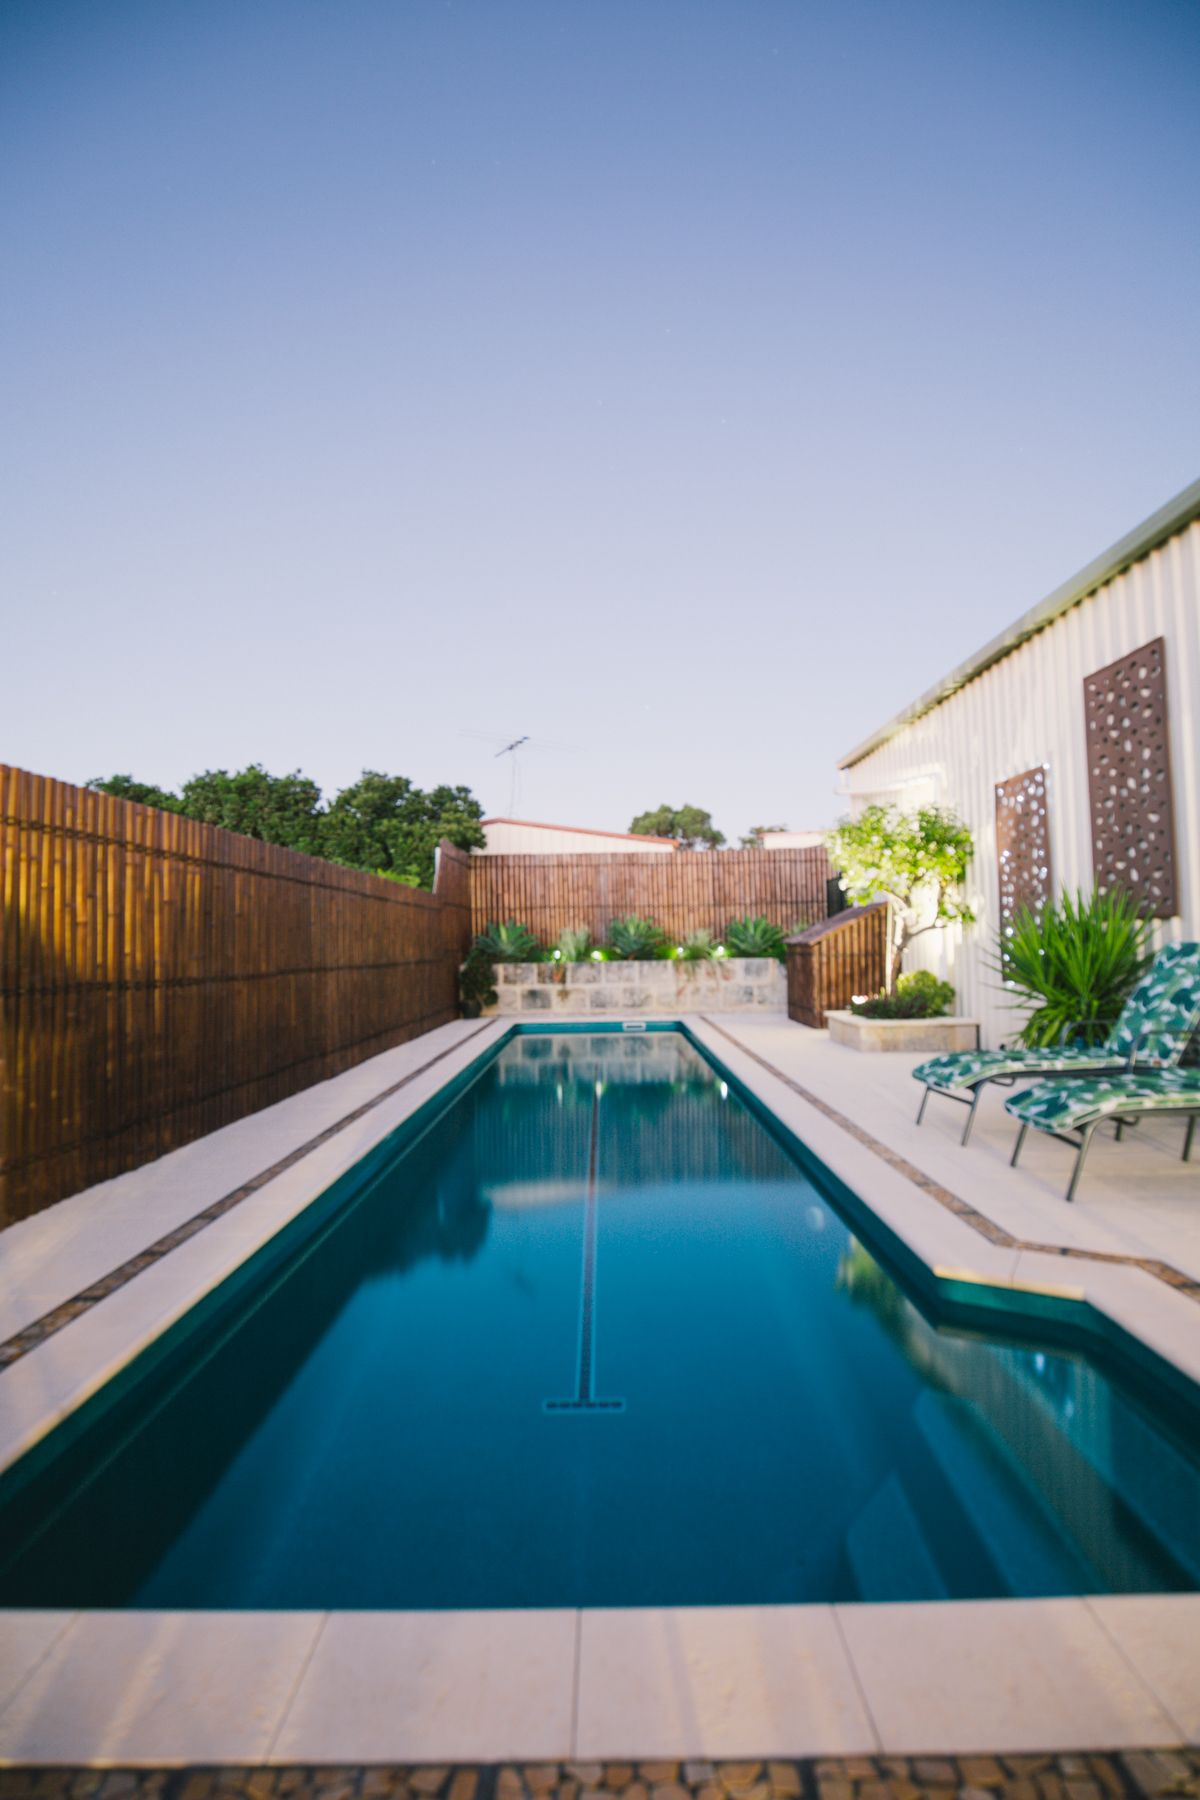 Lap Pools Offer The Best Of Both Worlds Leisure And Fitness This Backyard Lap Pool Is Perfect For A Slim Lot That Doesn T H Pool Lap Pools Backyard Spa Pool